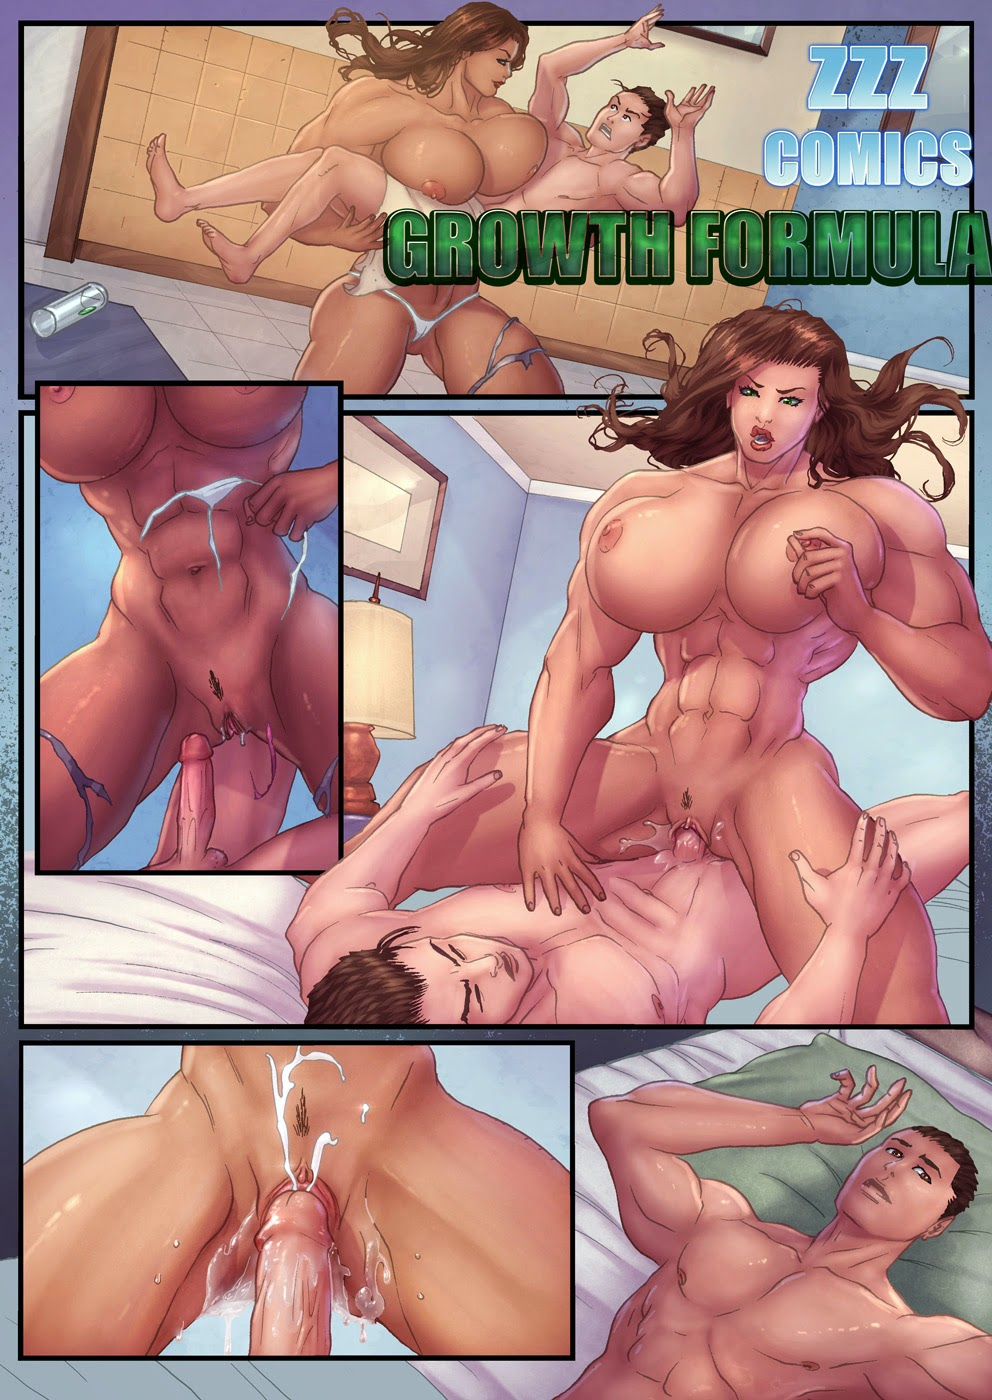 Can find Muscle giantess growth sex comics realize, what